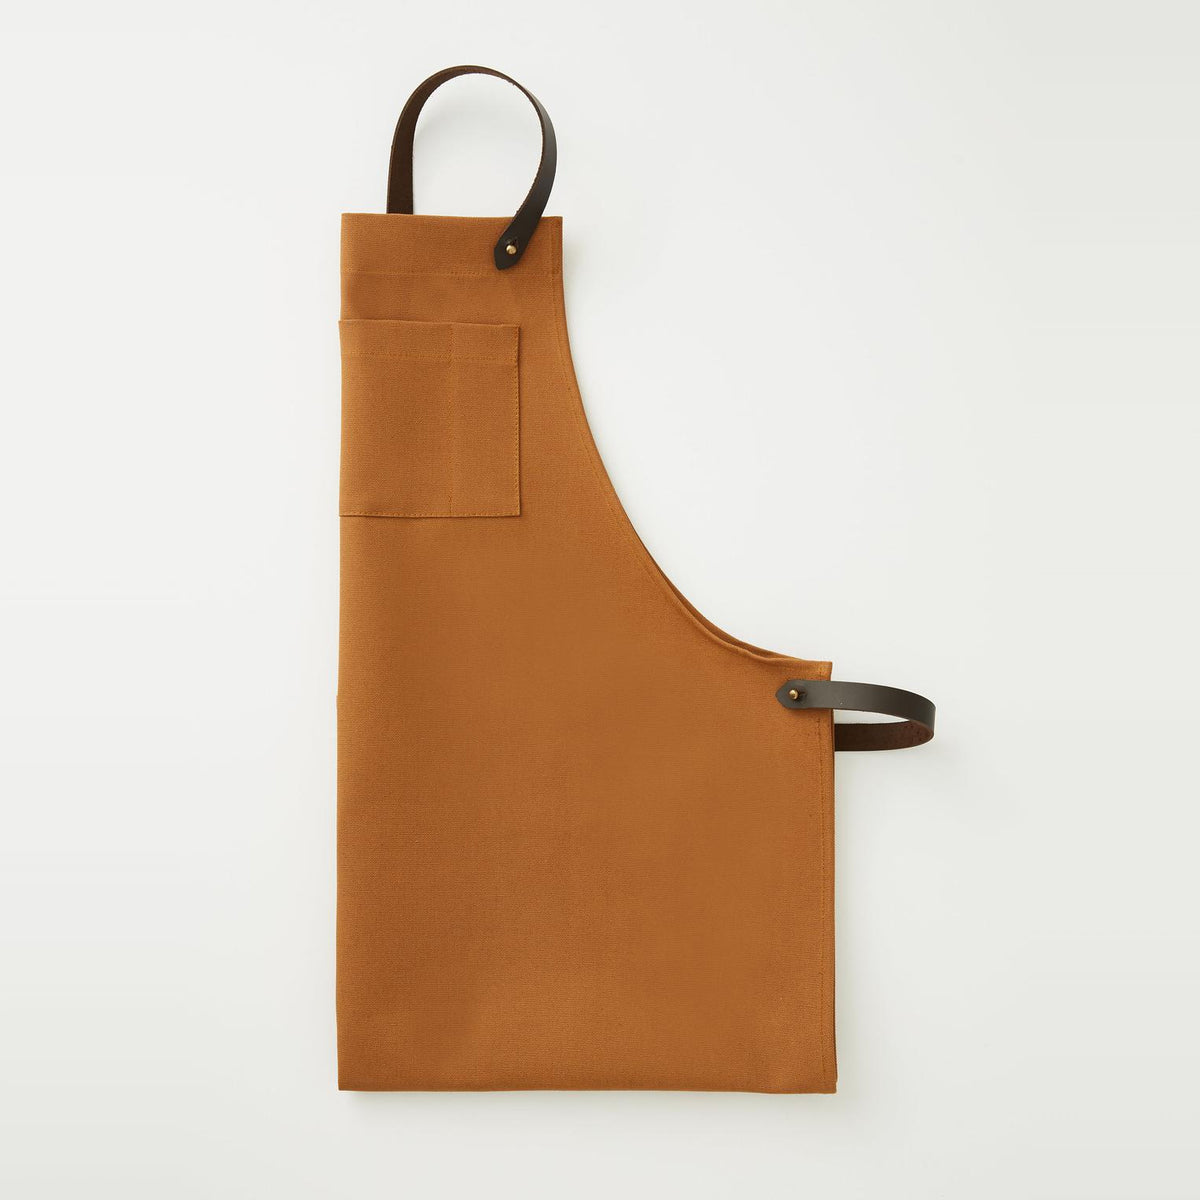 Handcrafted Unisex Camel Canvas & Leather Apron - Sold by Chic & Basta